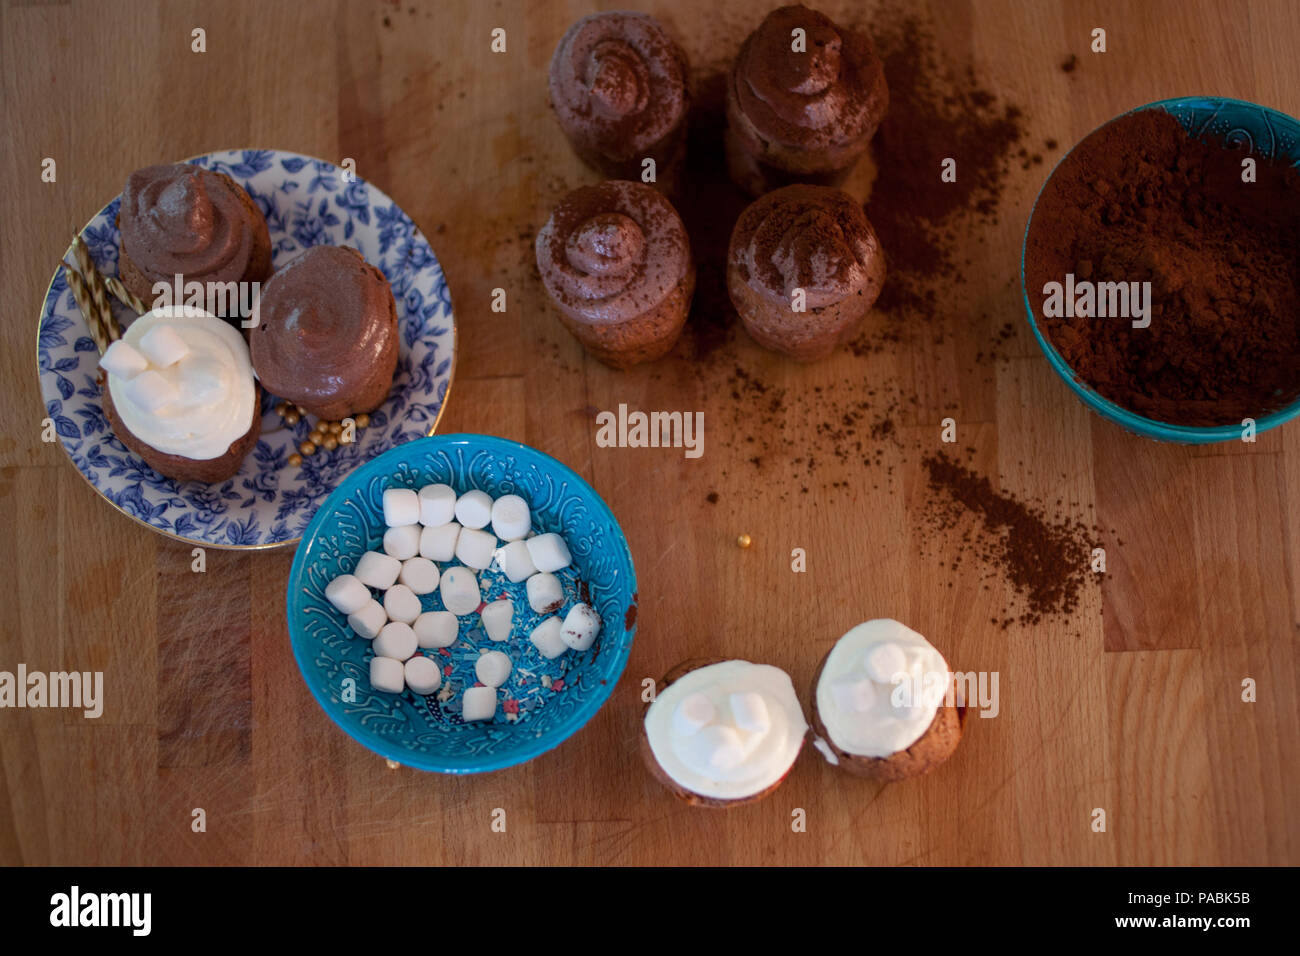 Set for cooking . celebration cupcakes, chocolate muffins on the table - Stock Image